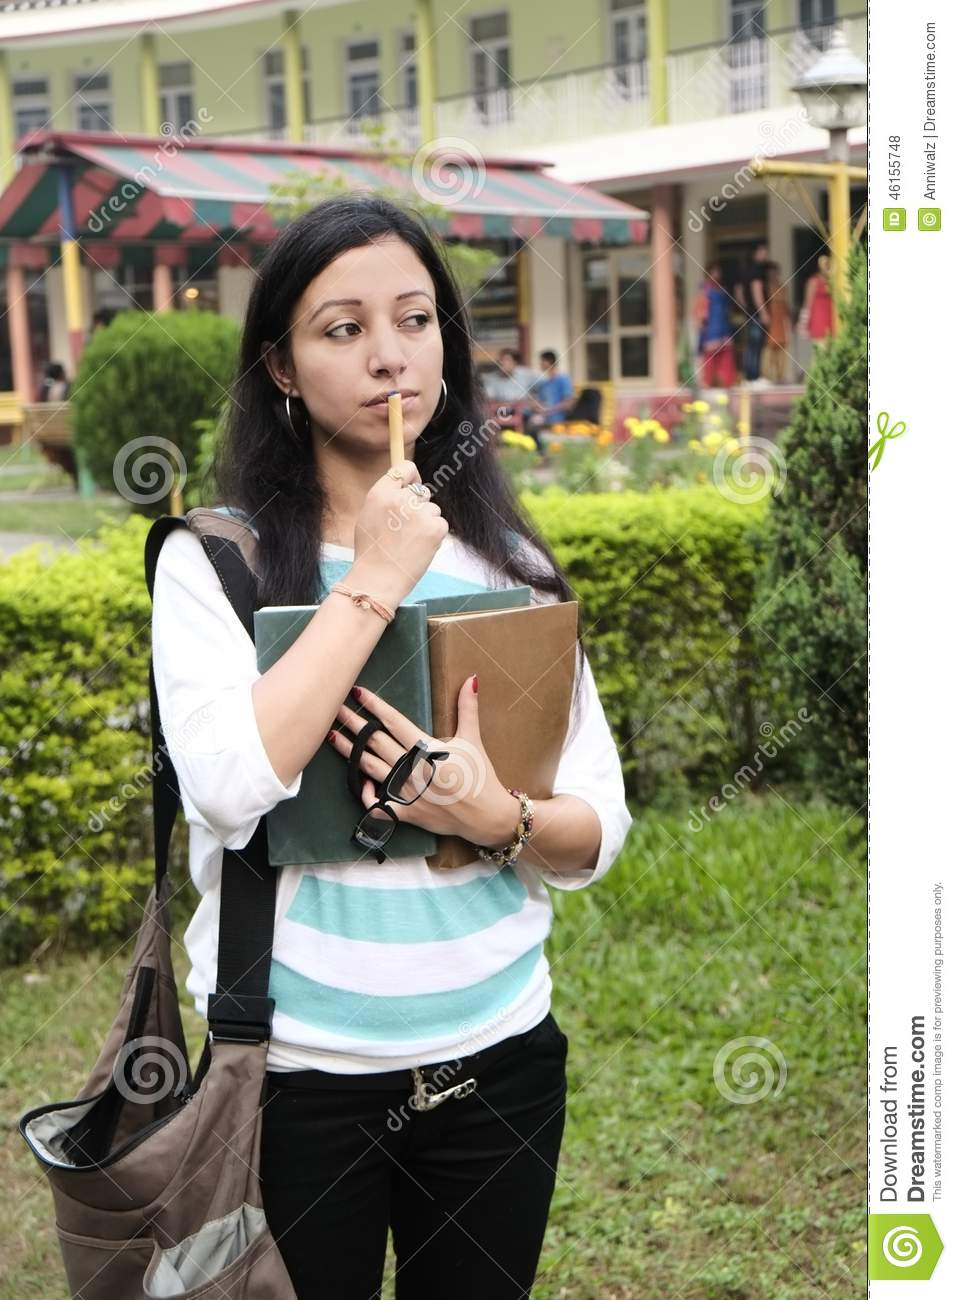 indian college student is busy thinking stock photo - image of